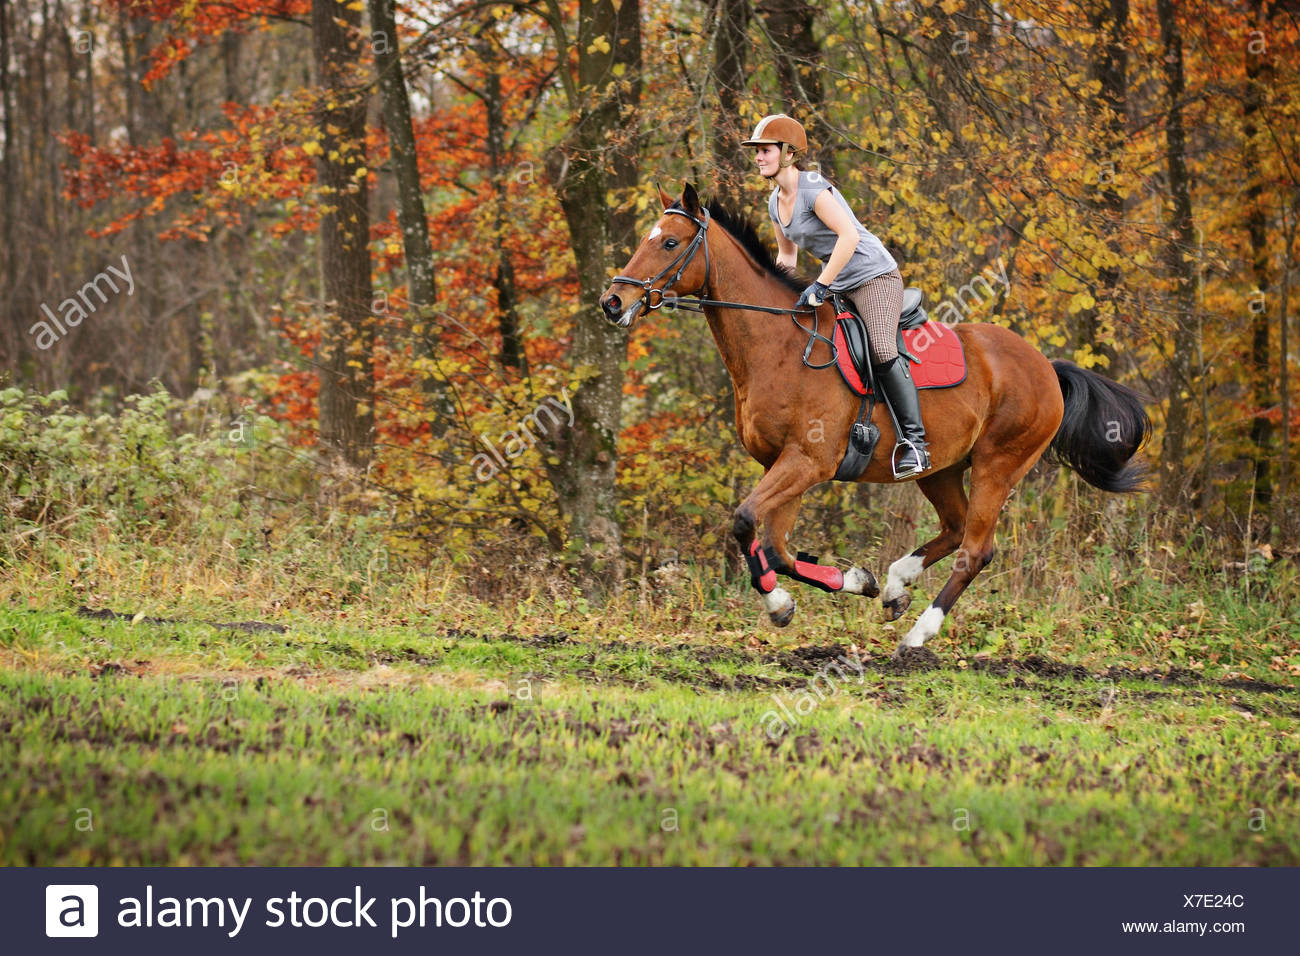 Woman Riding Horse In Forest Stock Photo Alamy